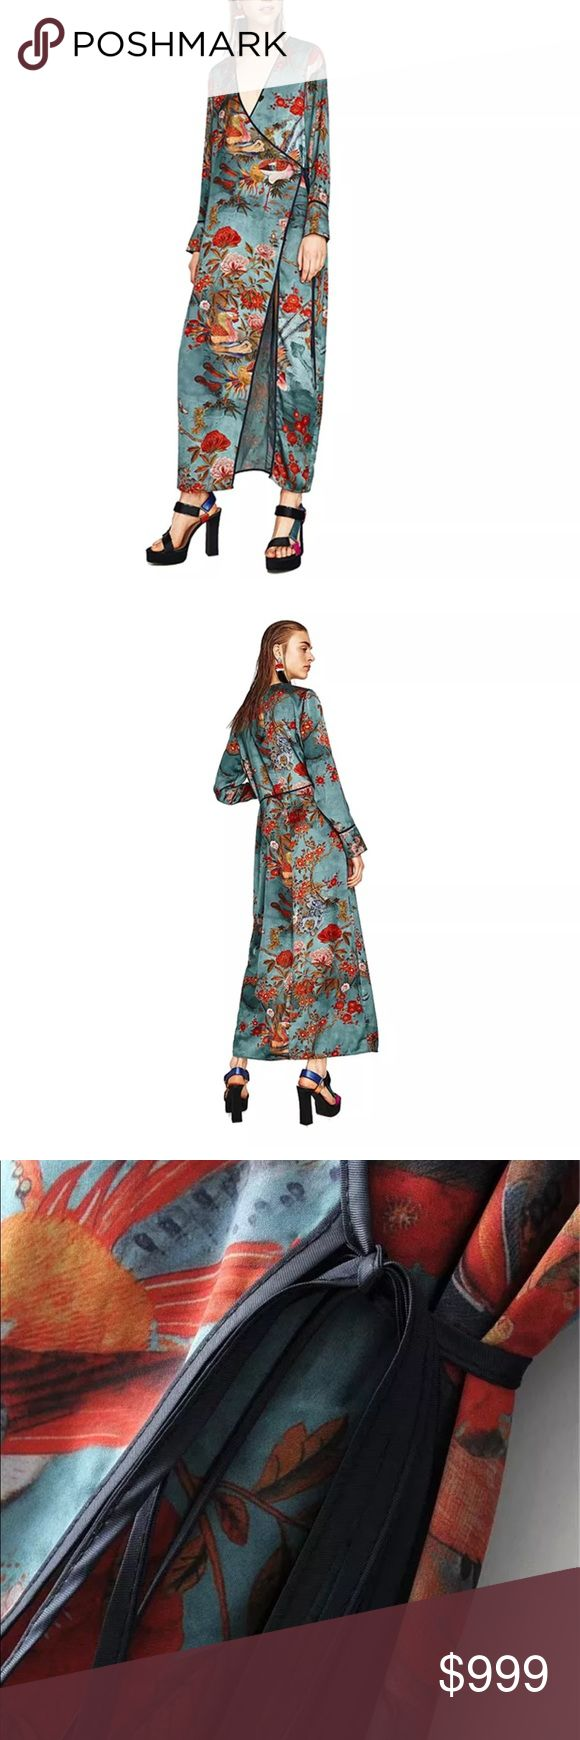 Coming Soon! Zara Sky Blue Floral Maxi Kimono Coming Soon! Zara Sky Blue Floral Maxi Kimono/ Duster • Sold out everywhere • Like this listing to be notified upon arrival. Fall 2017 Trends Zara Jackets & Coats